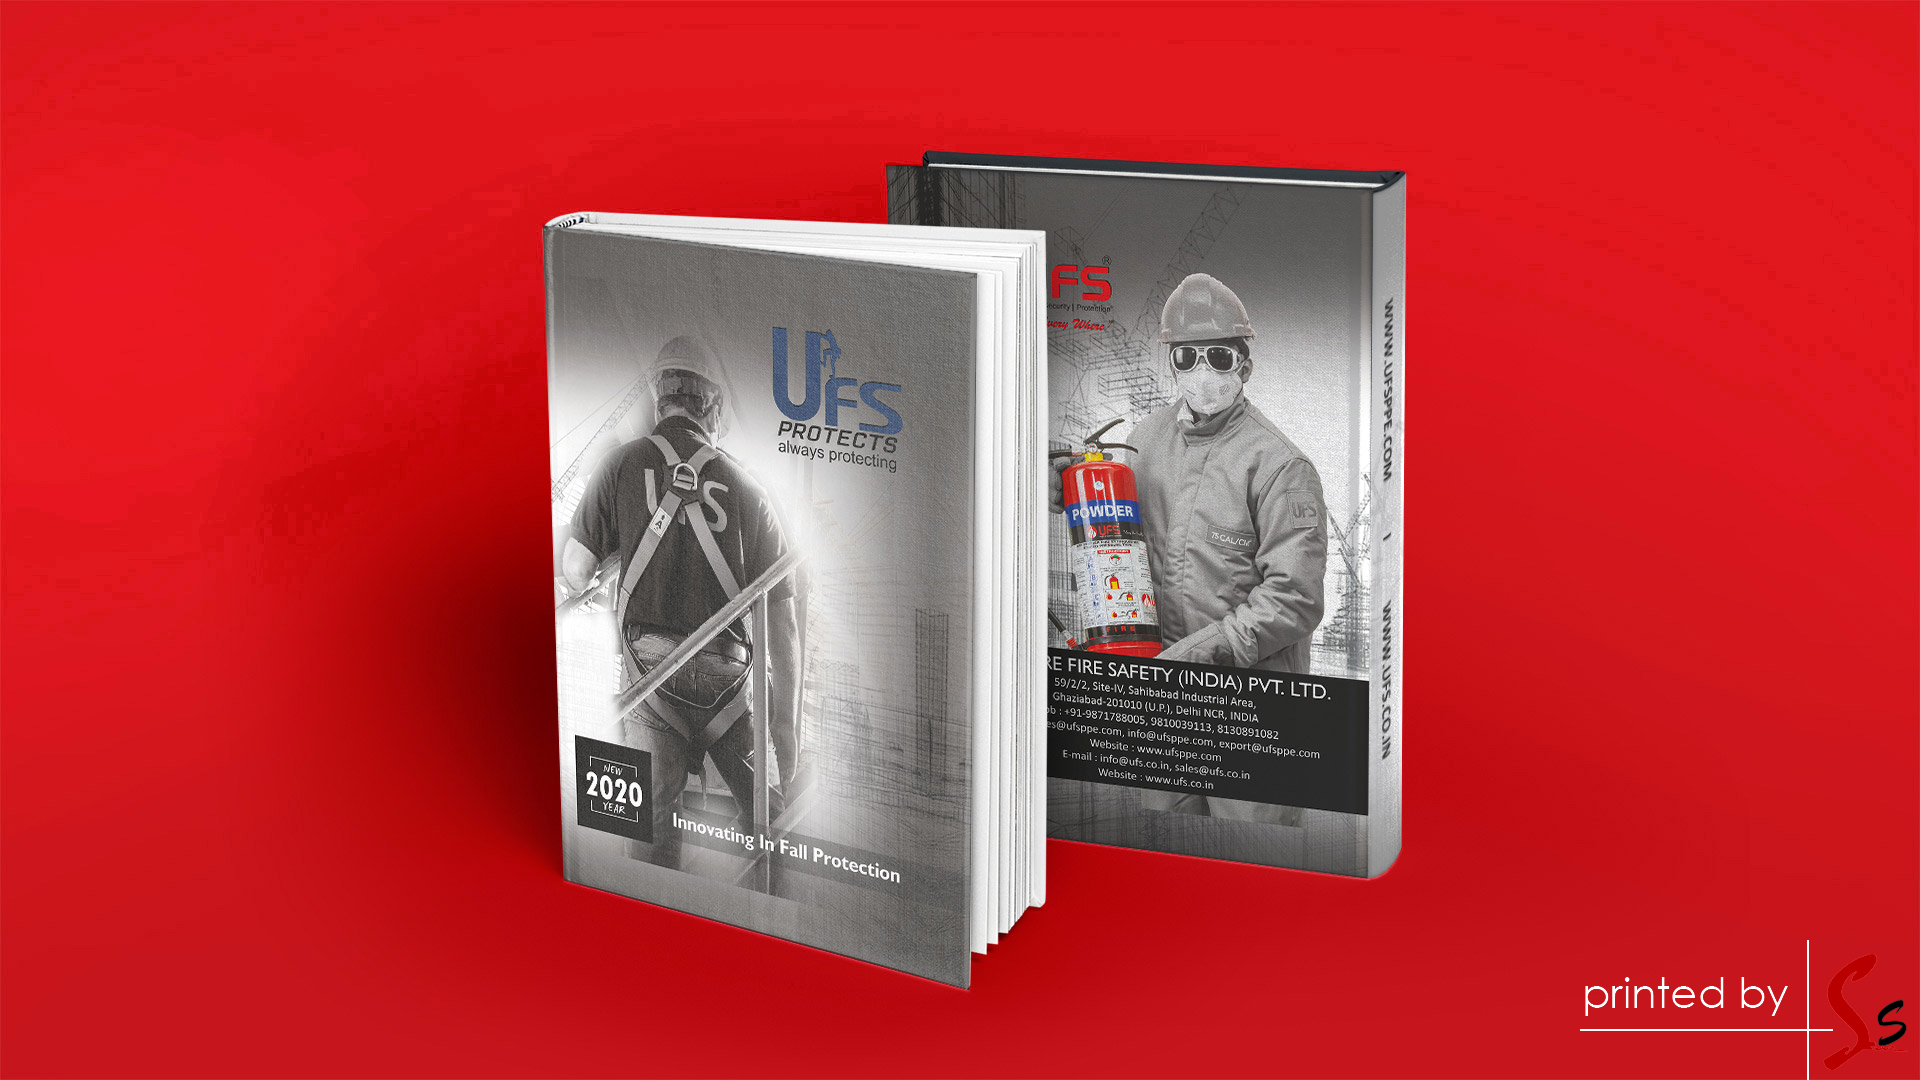 UFSProtects Diary Printing